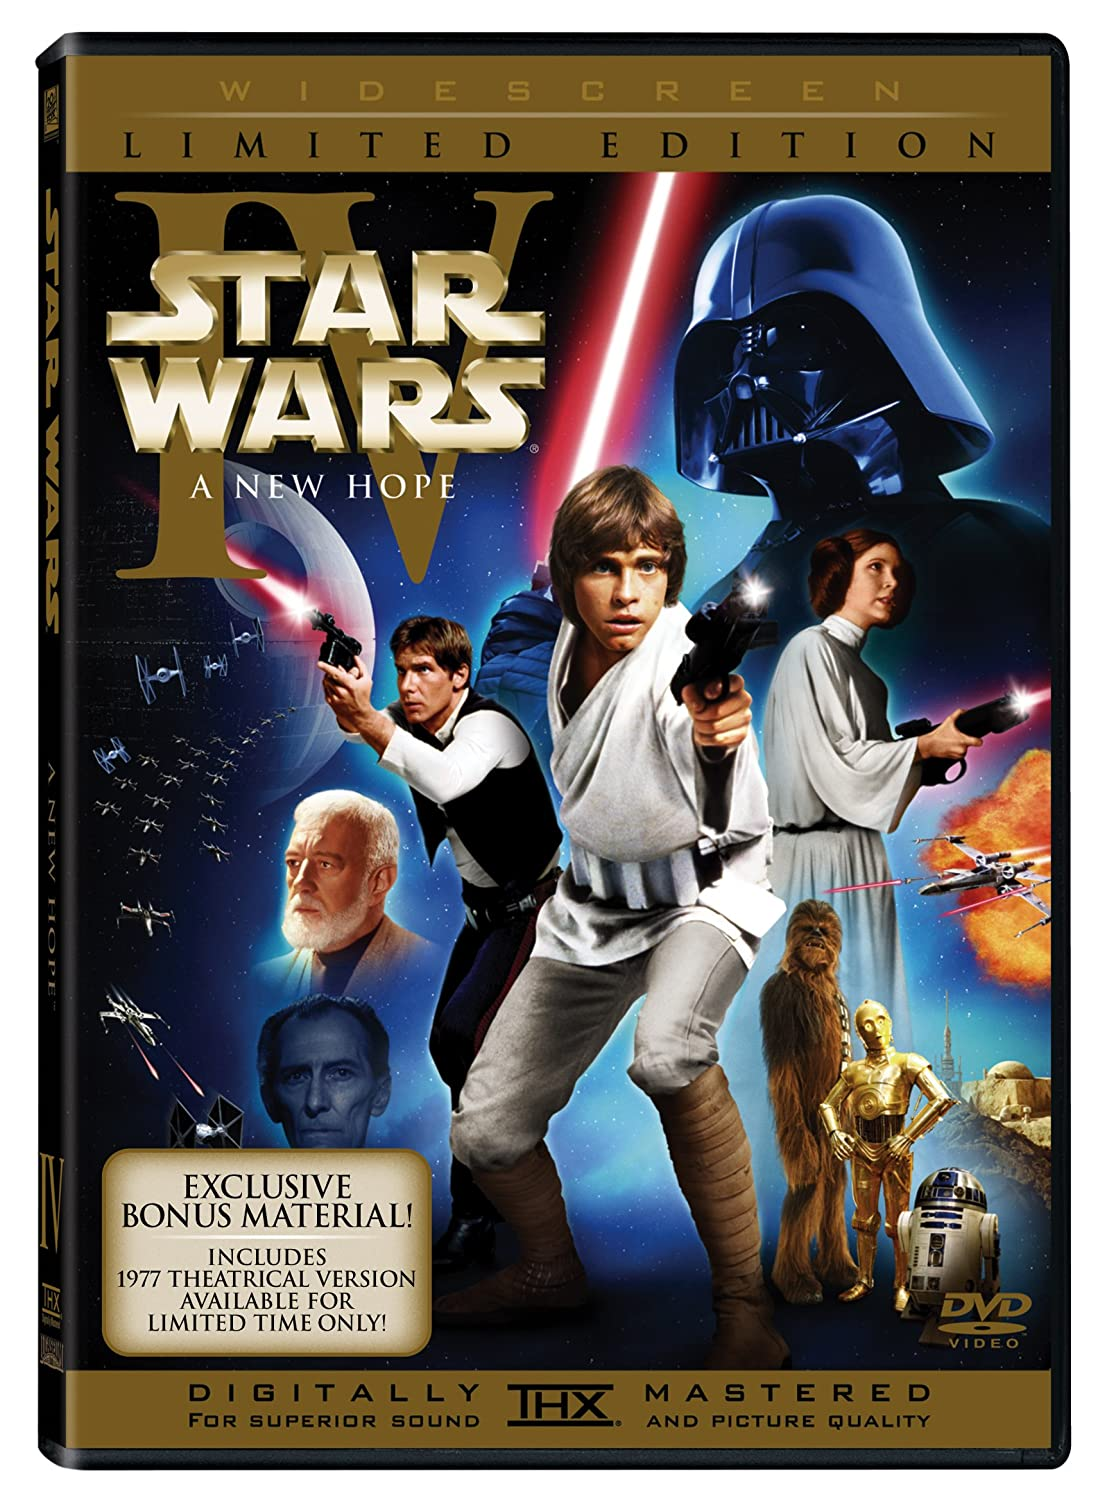 Amazon Com Star Wars Episode Iv A New Hope Limited Edition Mark Hamill Harrison Ford Carrie Fisher Alec Guinness Peter Cushing Anthony Daniels Kenny Baker Peter Mayhew David Prowse Phil Brown Shelagh Fraser